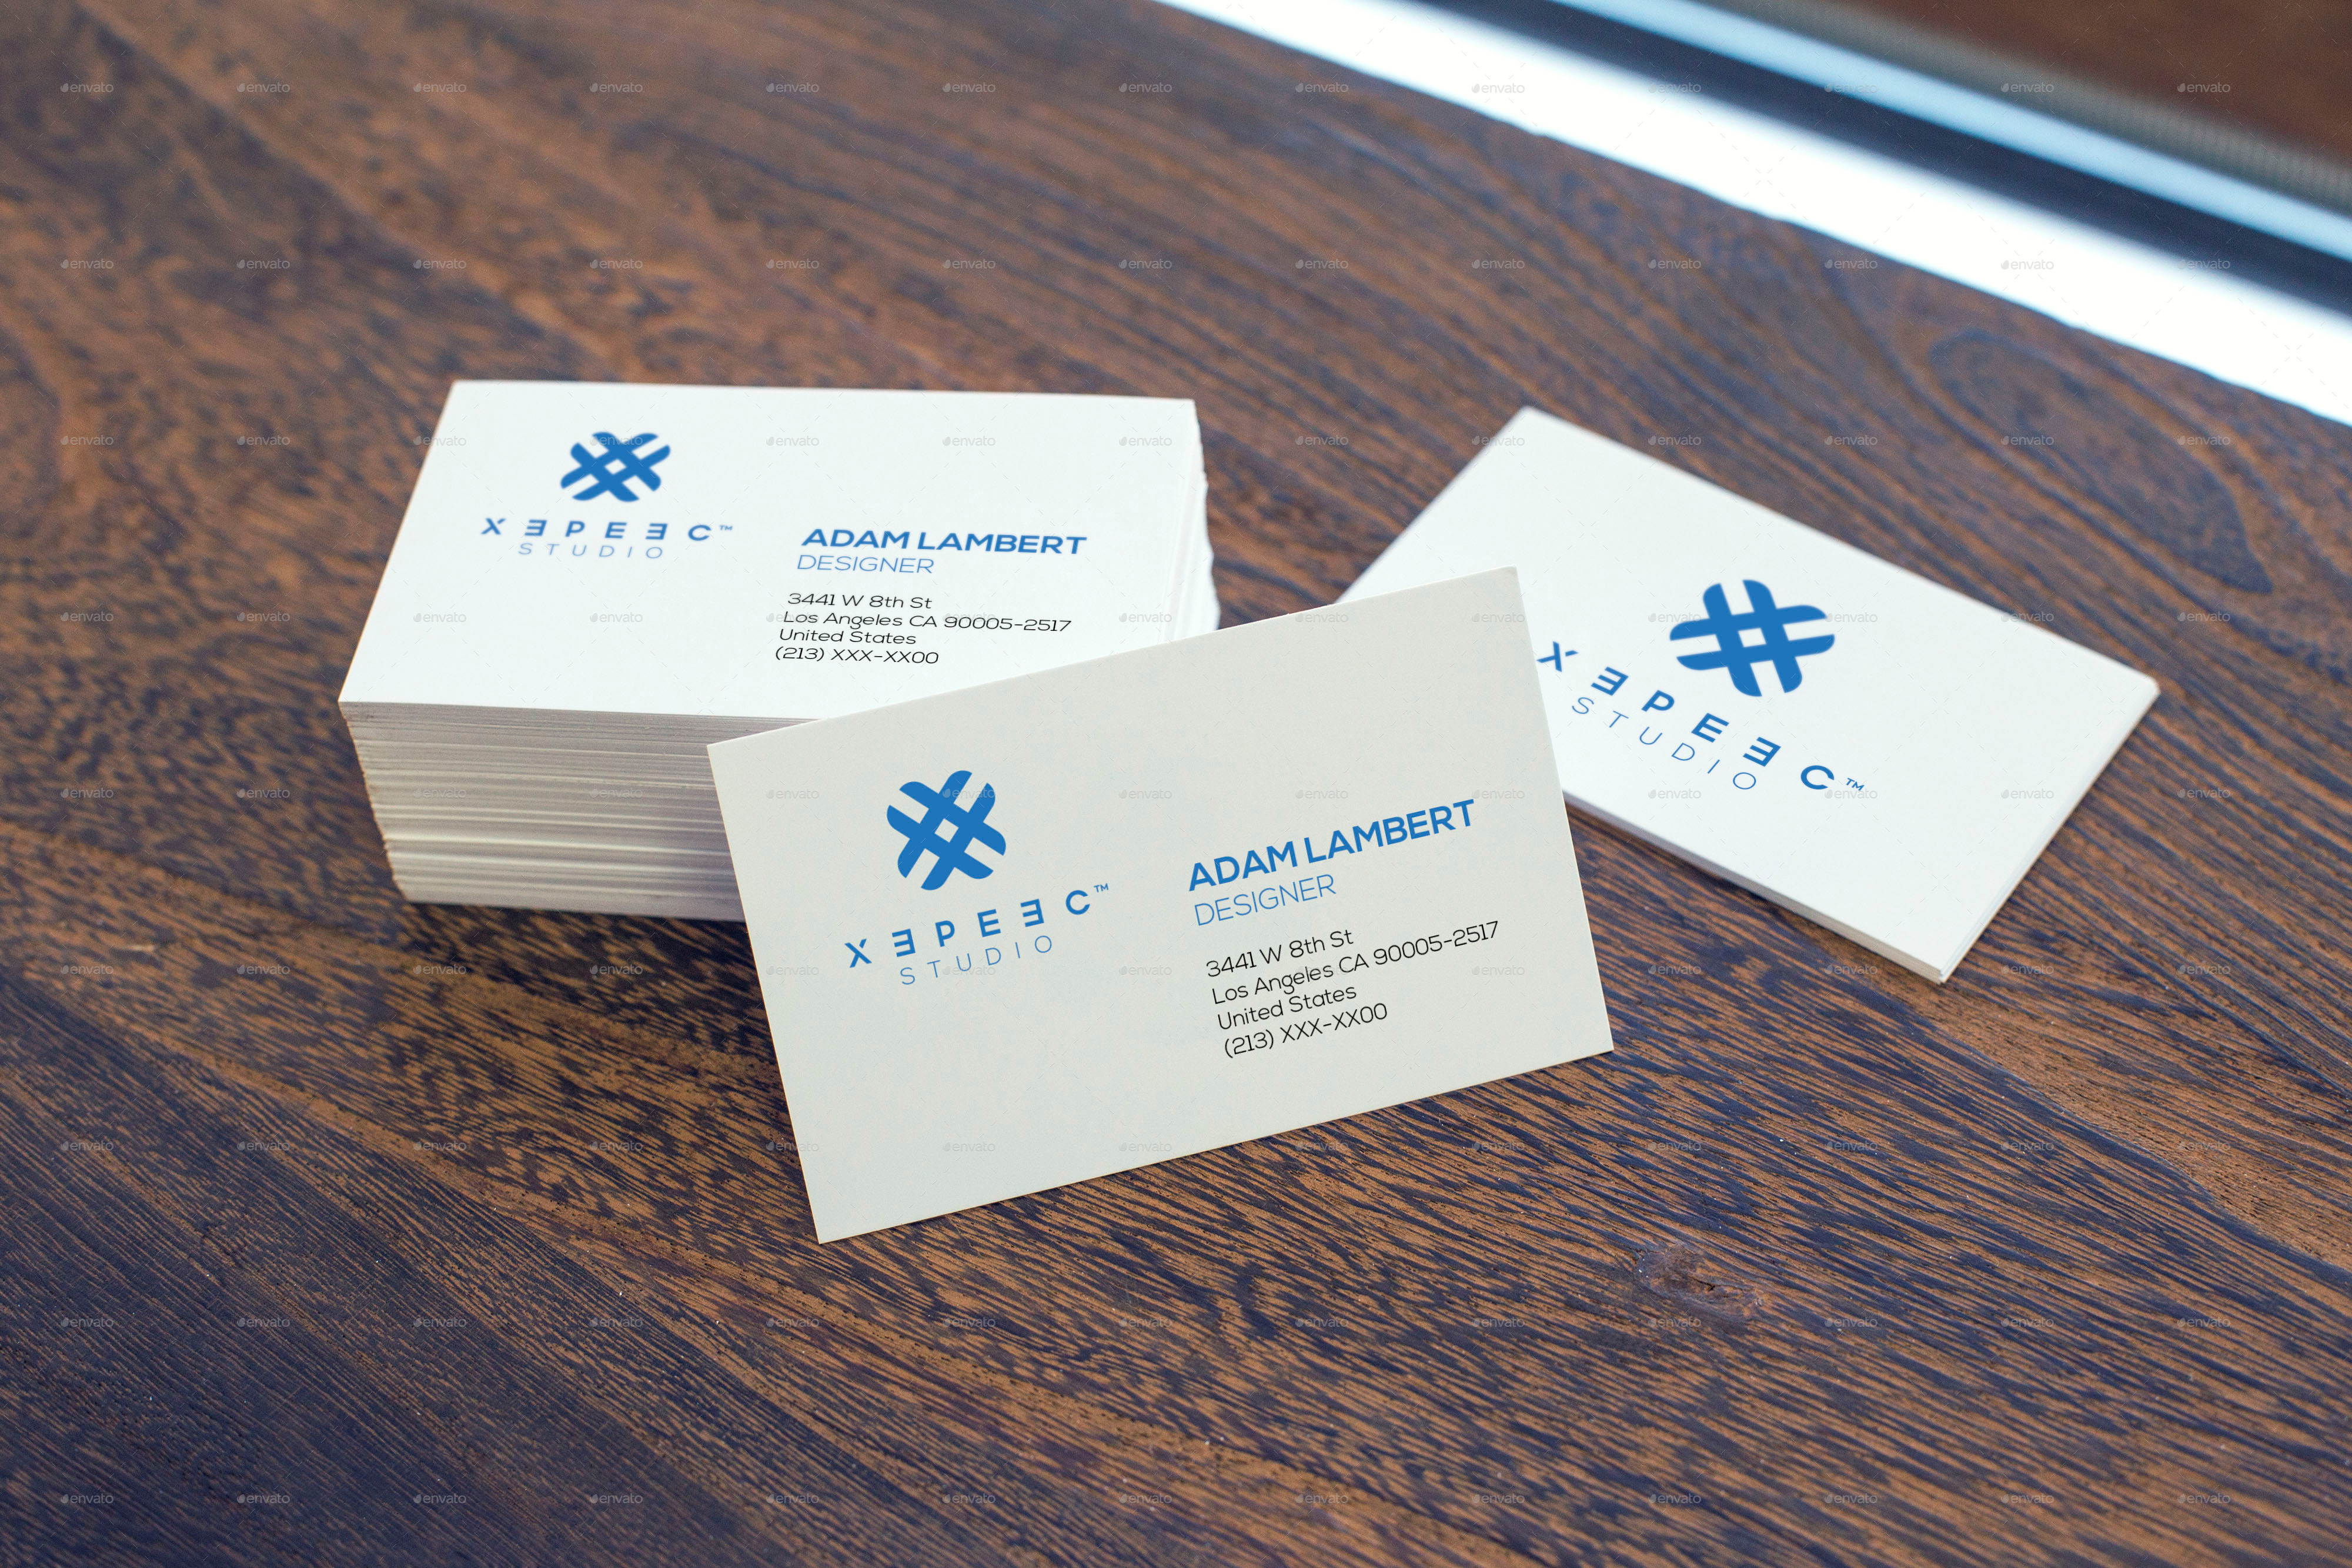 realistic business card mockups by xepeec